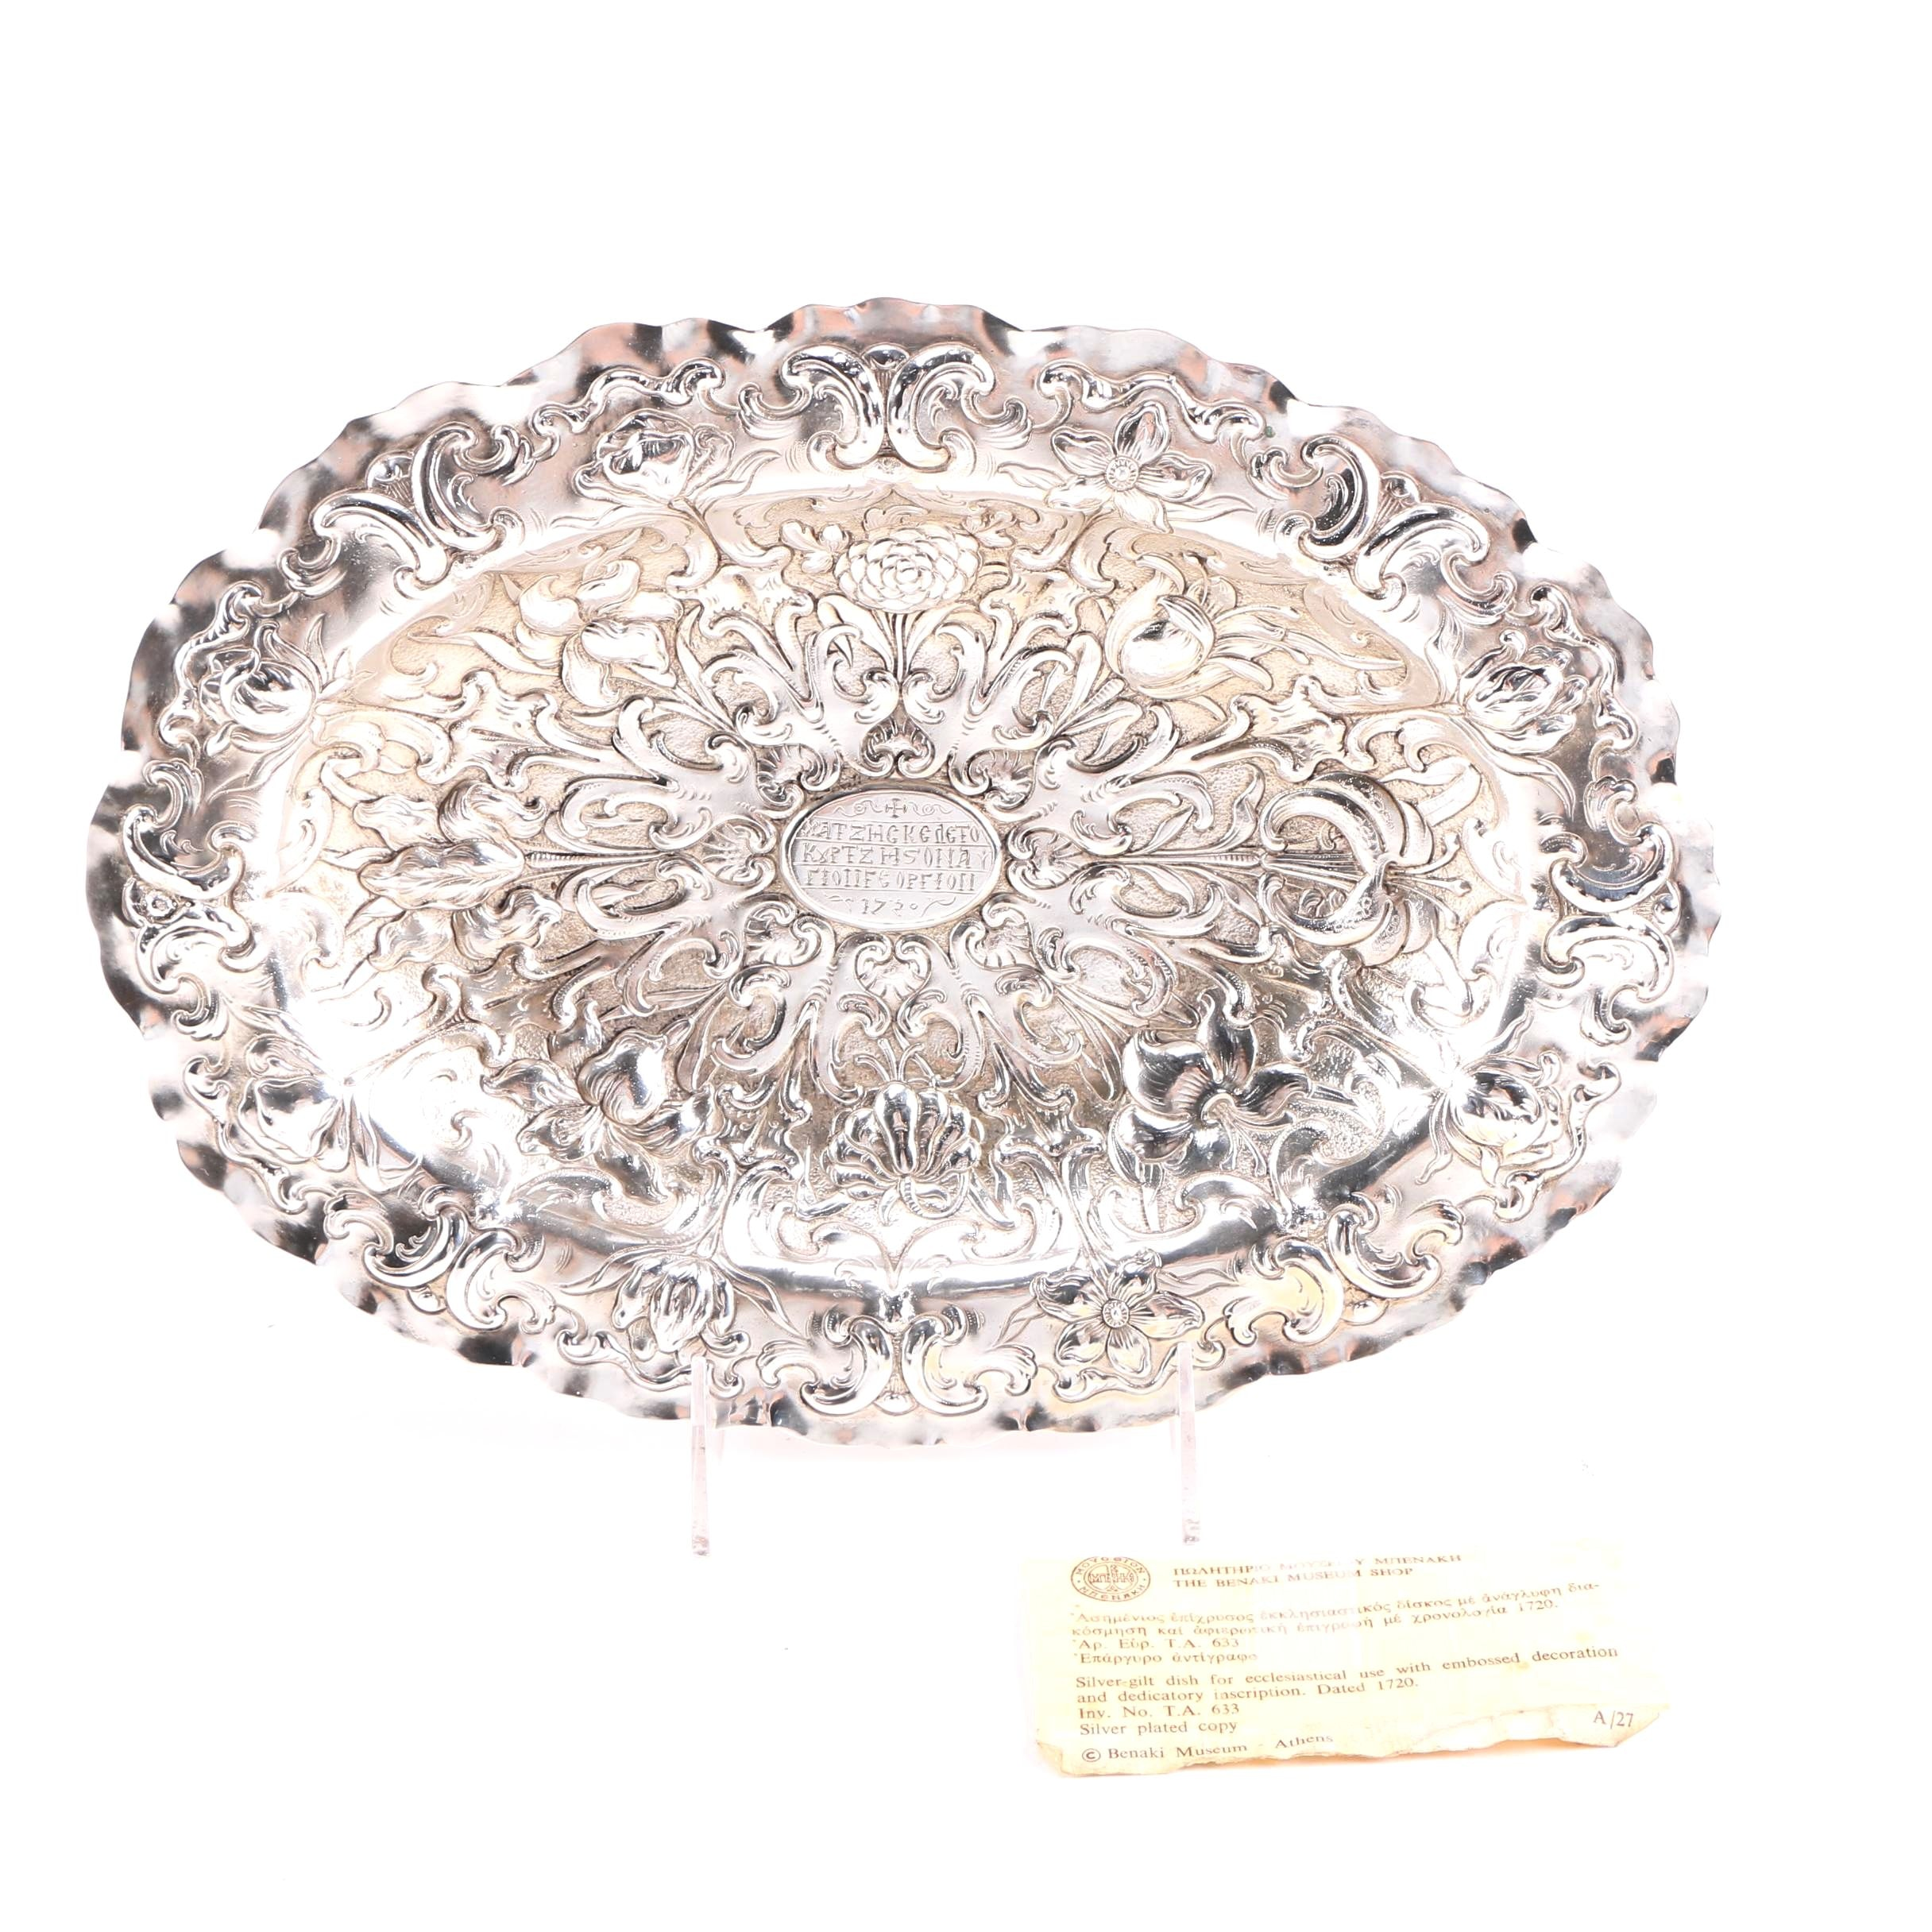 Plated Silver Reproduction After 1720s Grecian Ecclesiastical Tray